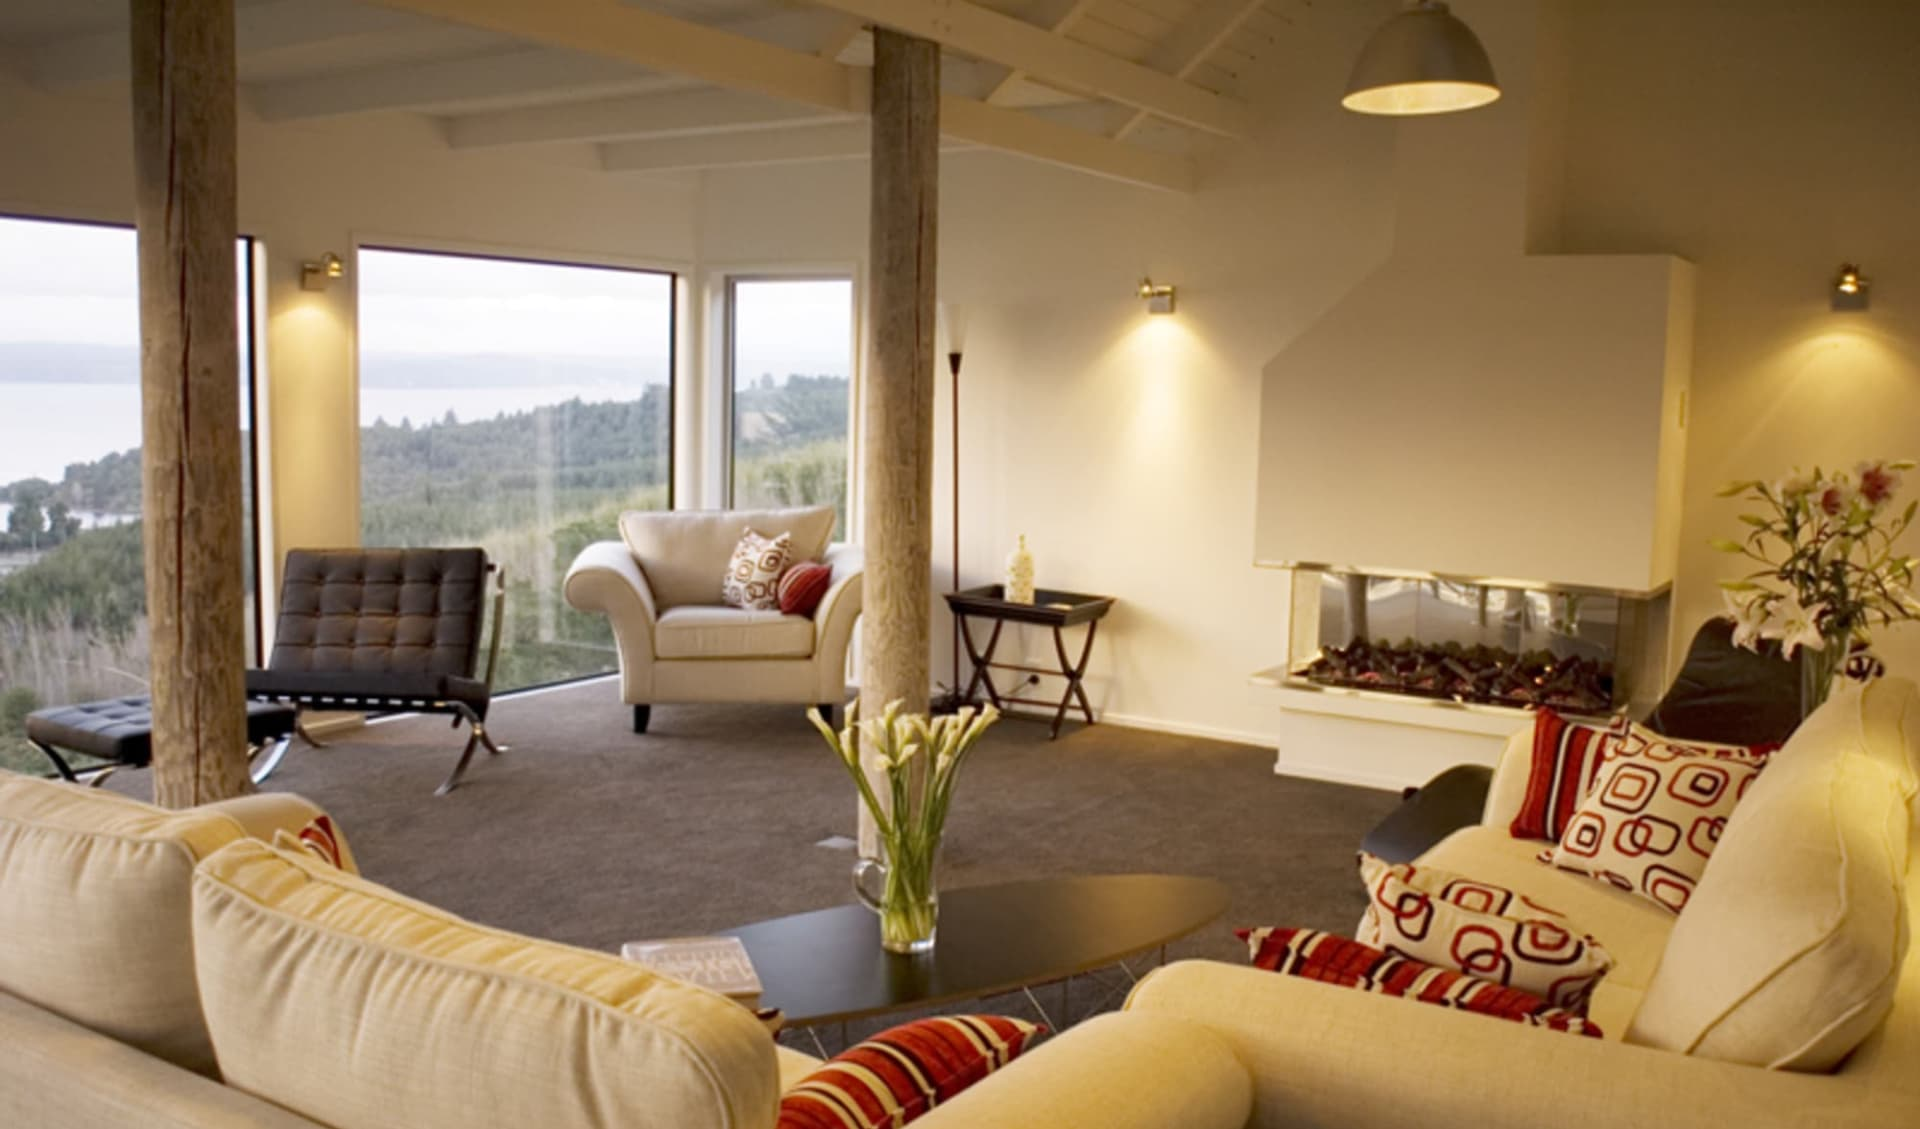 Acacia Cliffs Lodge in Taupo:  8.Relax and unwind in the guest lounge